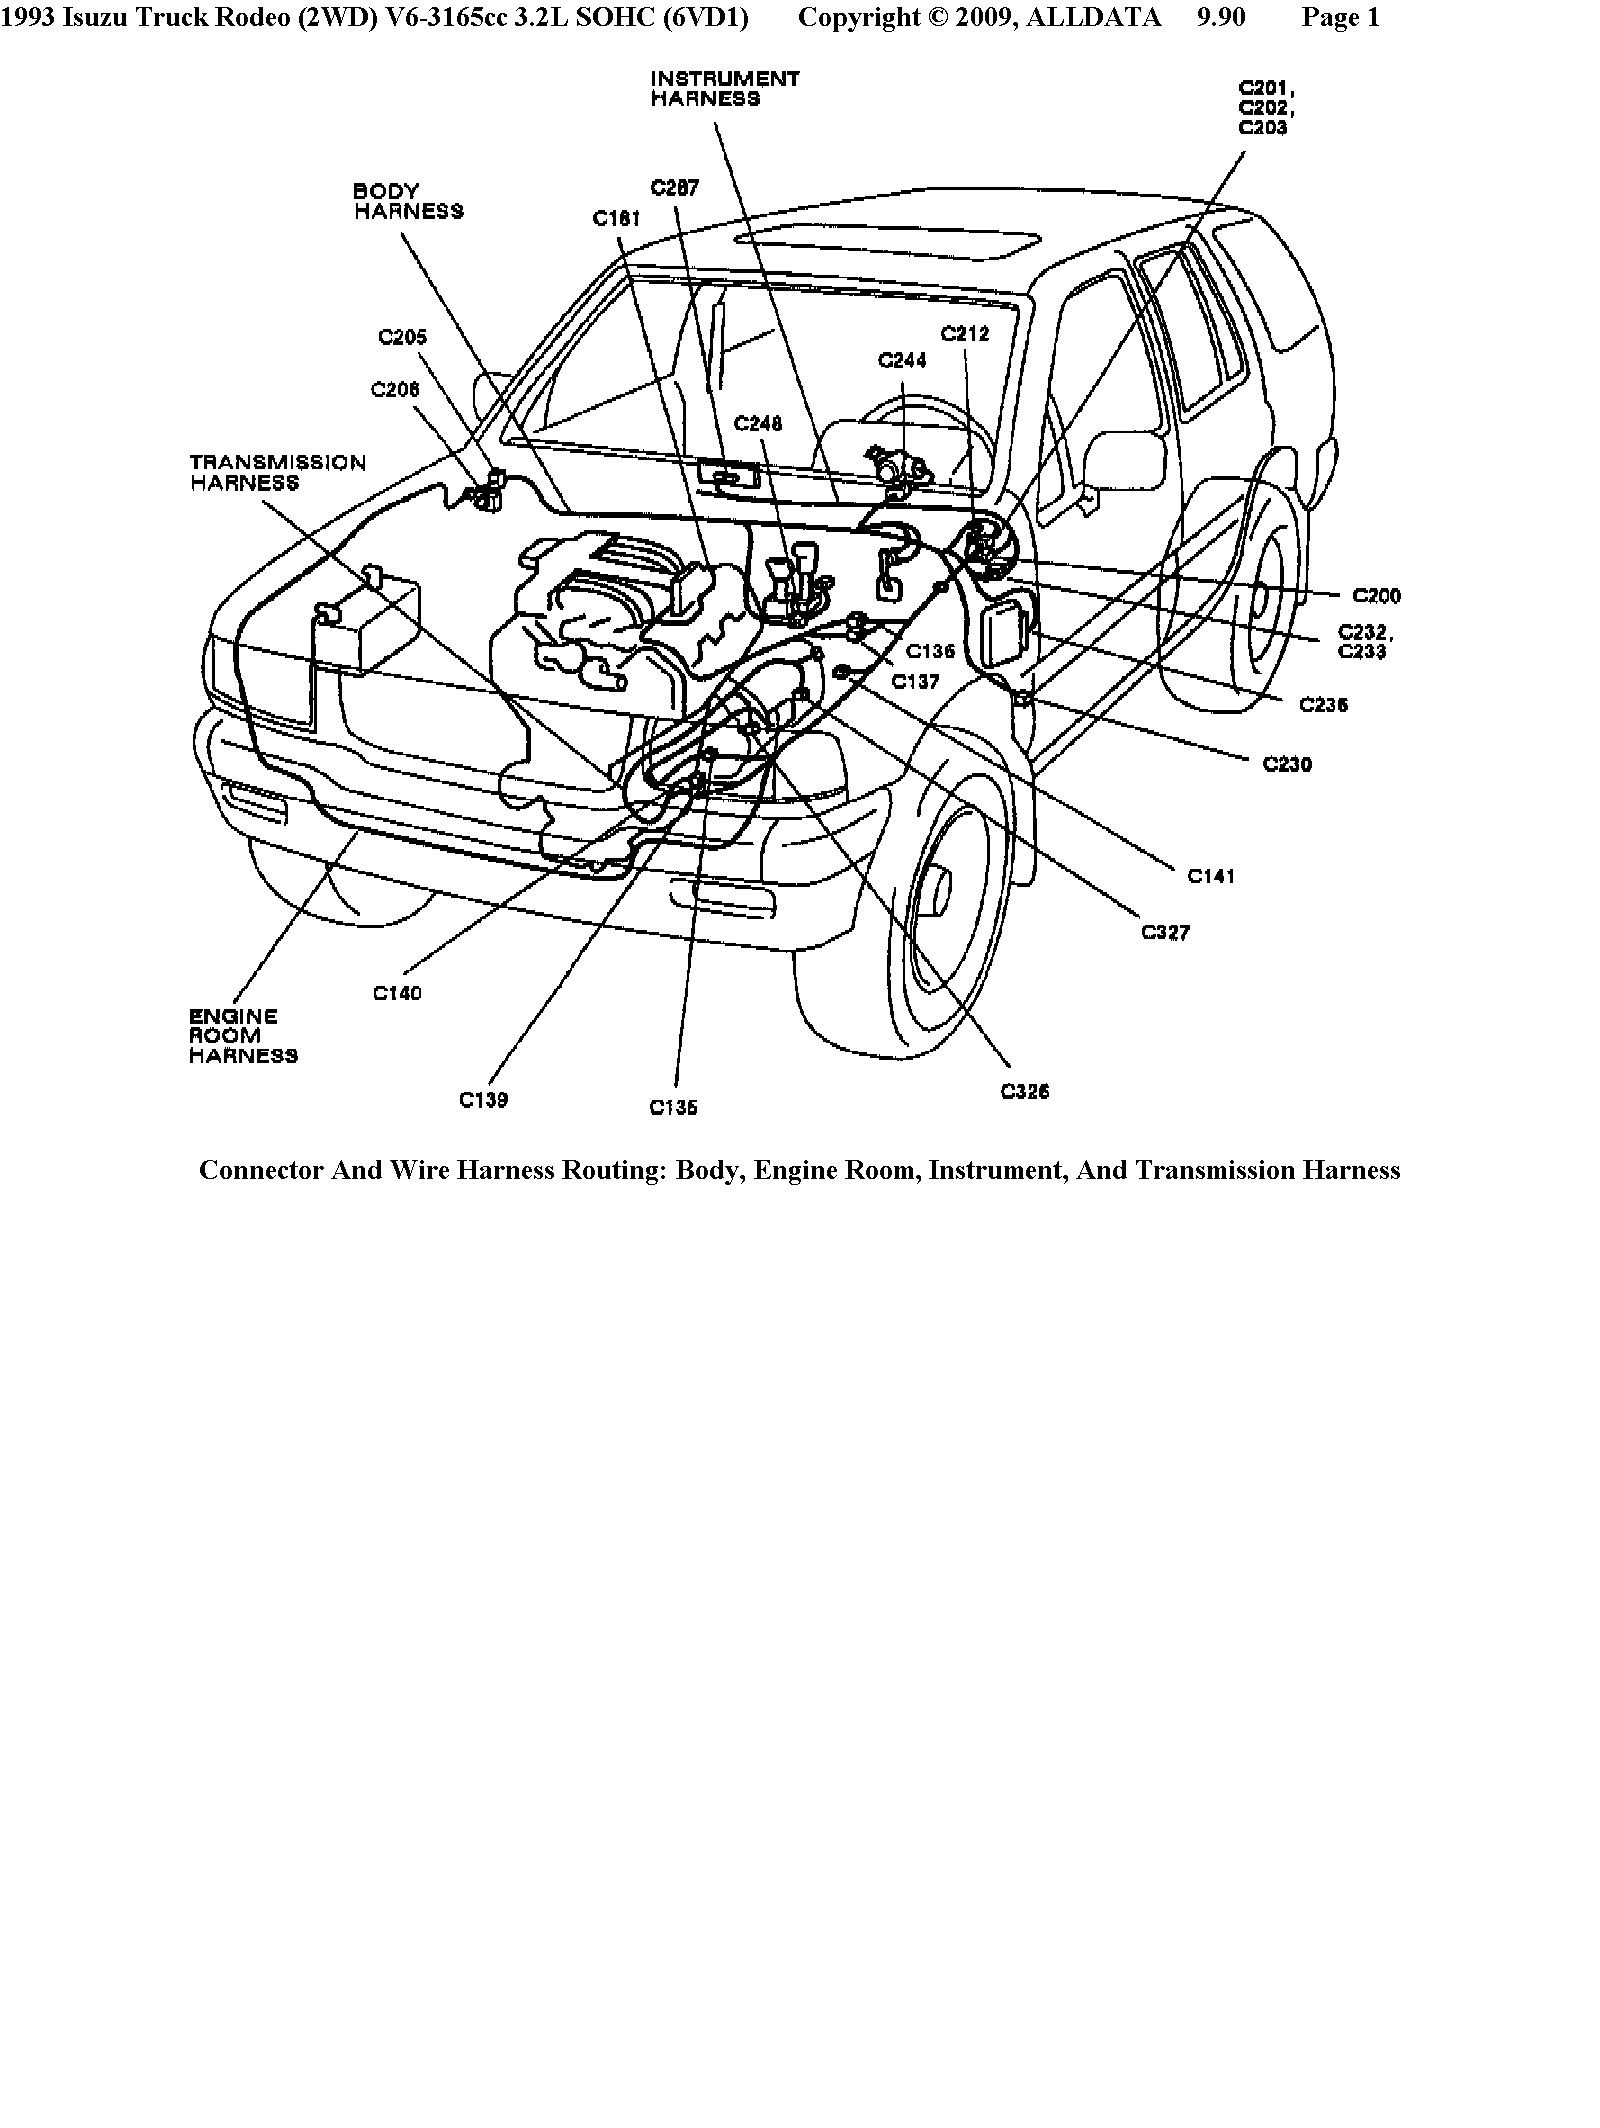 93 Mazda Protege Stereo Wiring - Wiring Diagram Networks